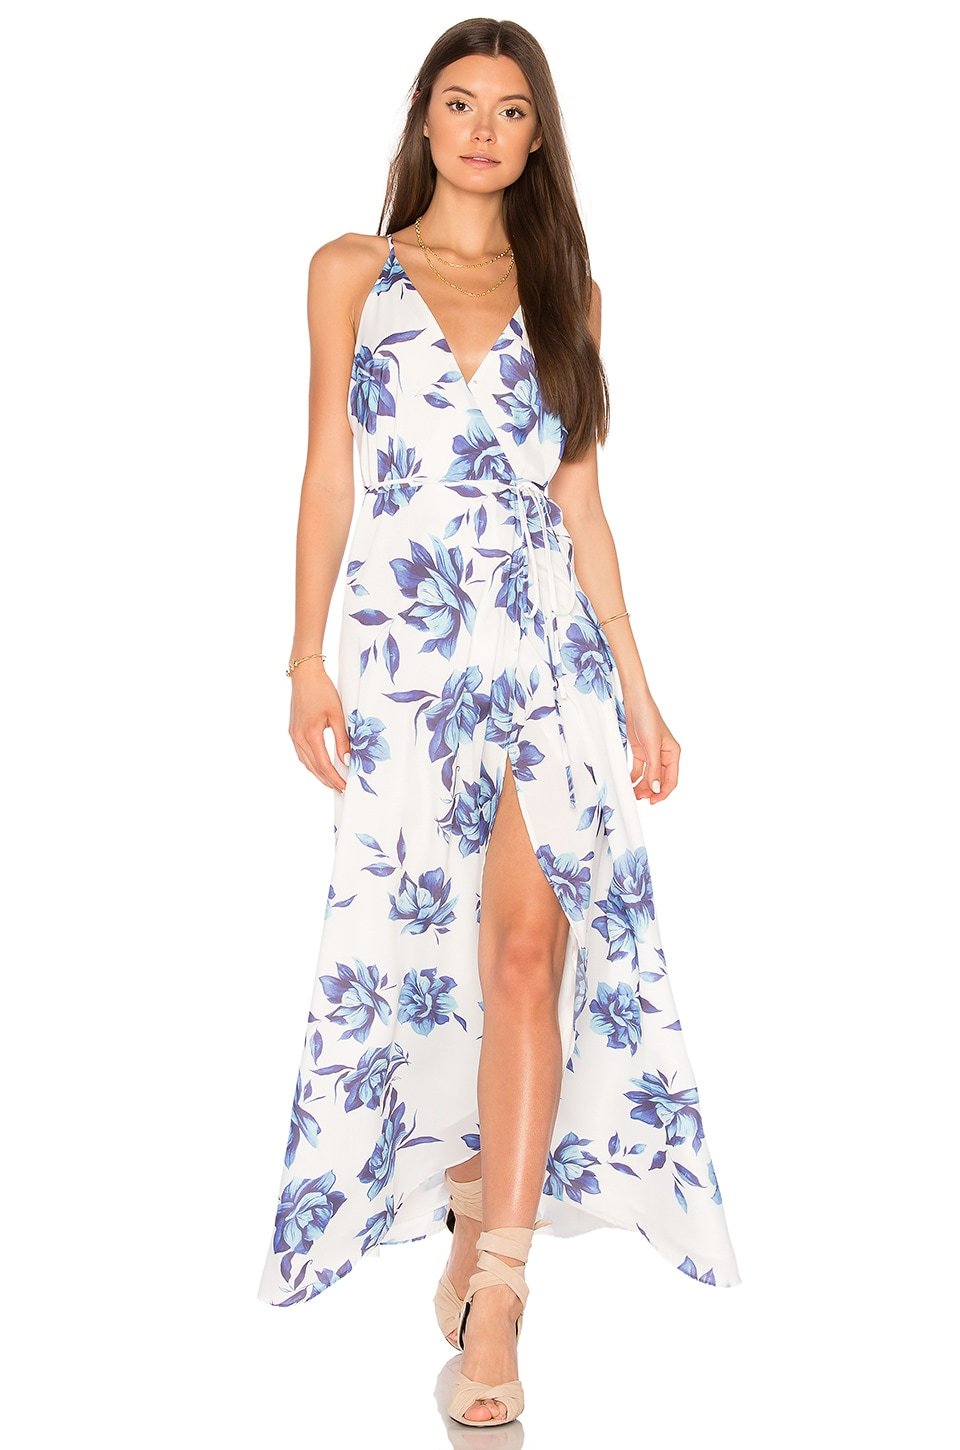 Yumi Kim Rush Hour Maxi Dress in Blue Bell